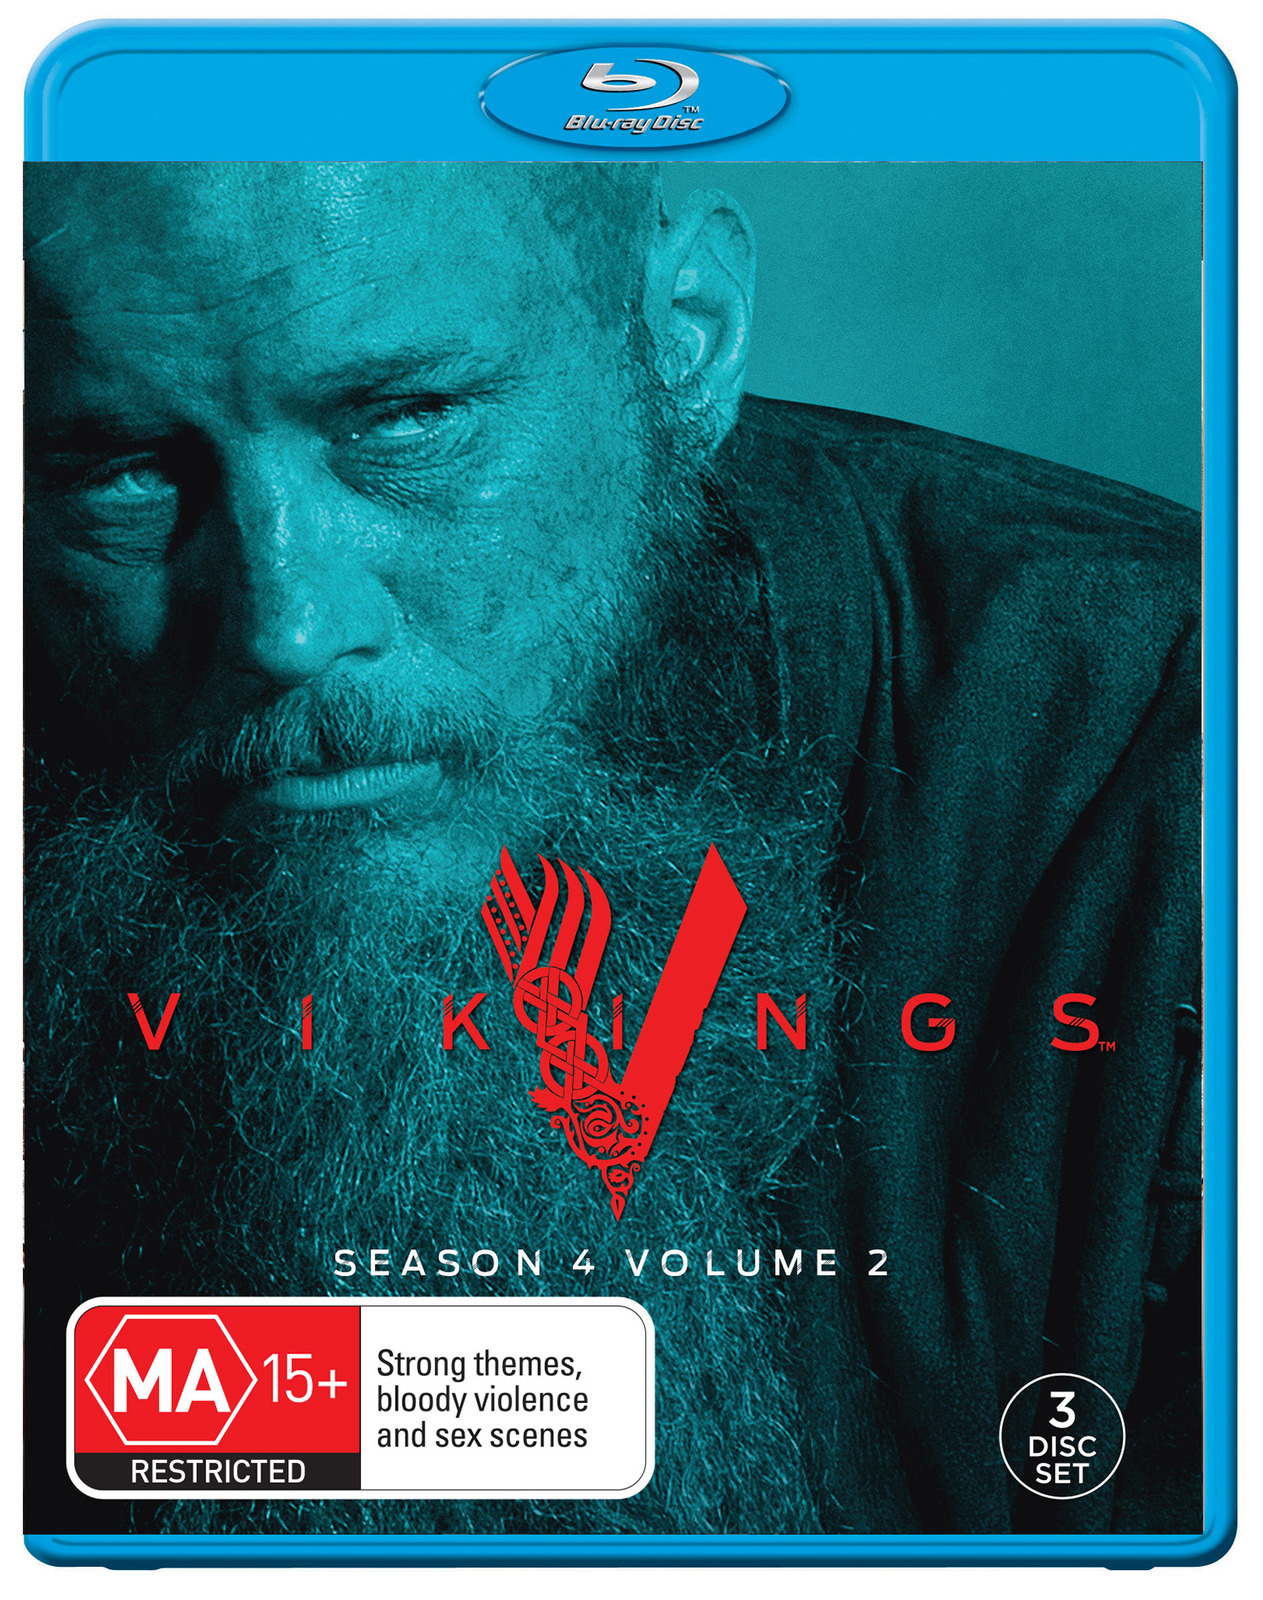 Vikings: Season 4 - Volume 2 on Blu-ray image